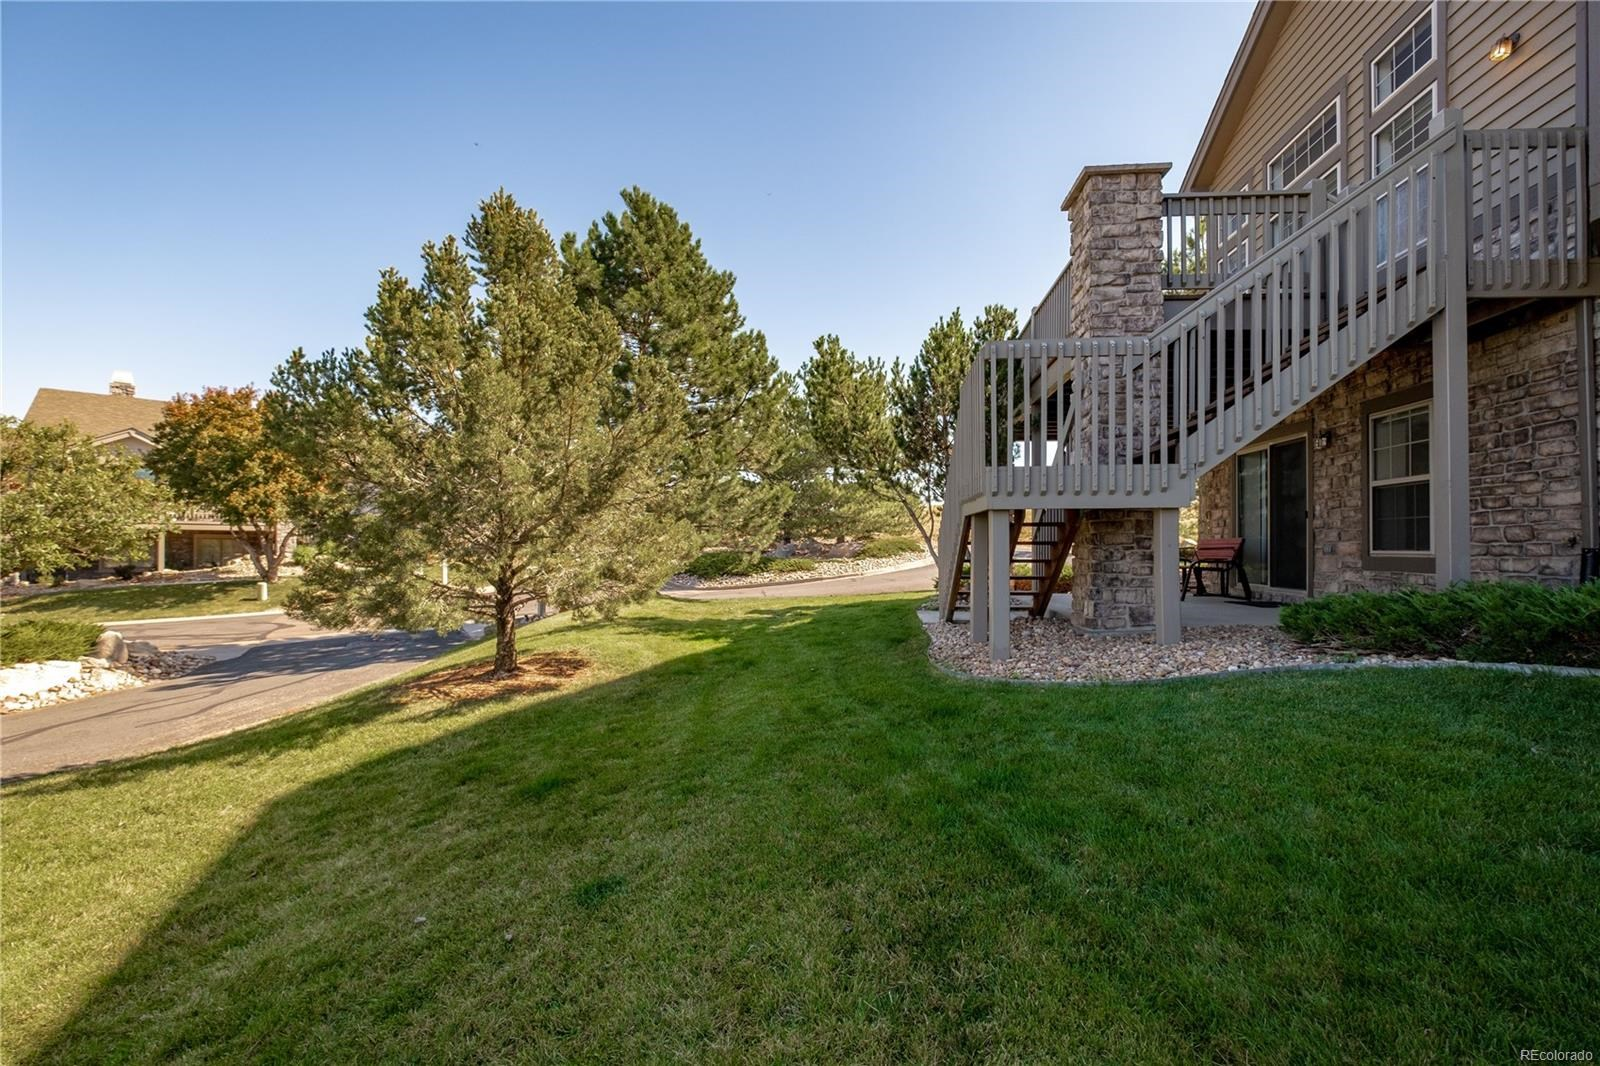 MLS# 9162651 - 35 - 51 Toppler Court, Castle Pines, CO 80108